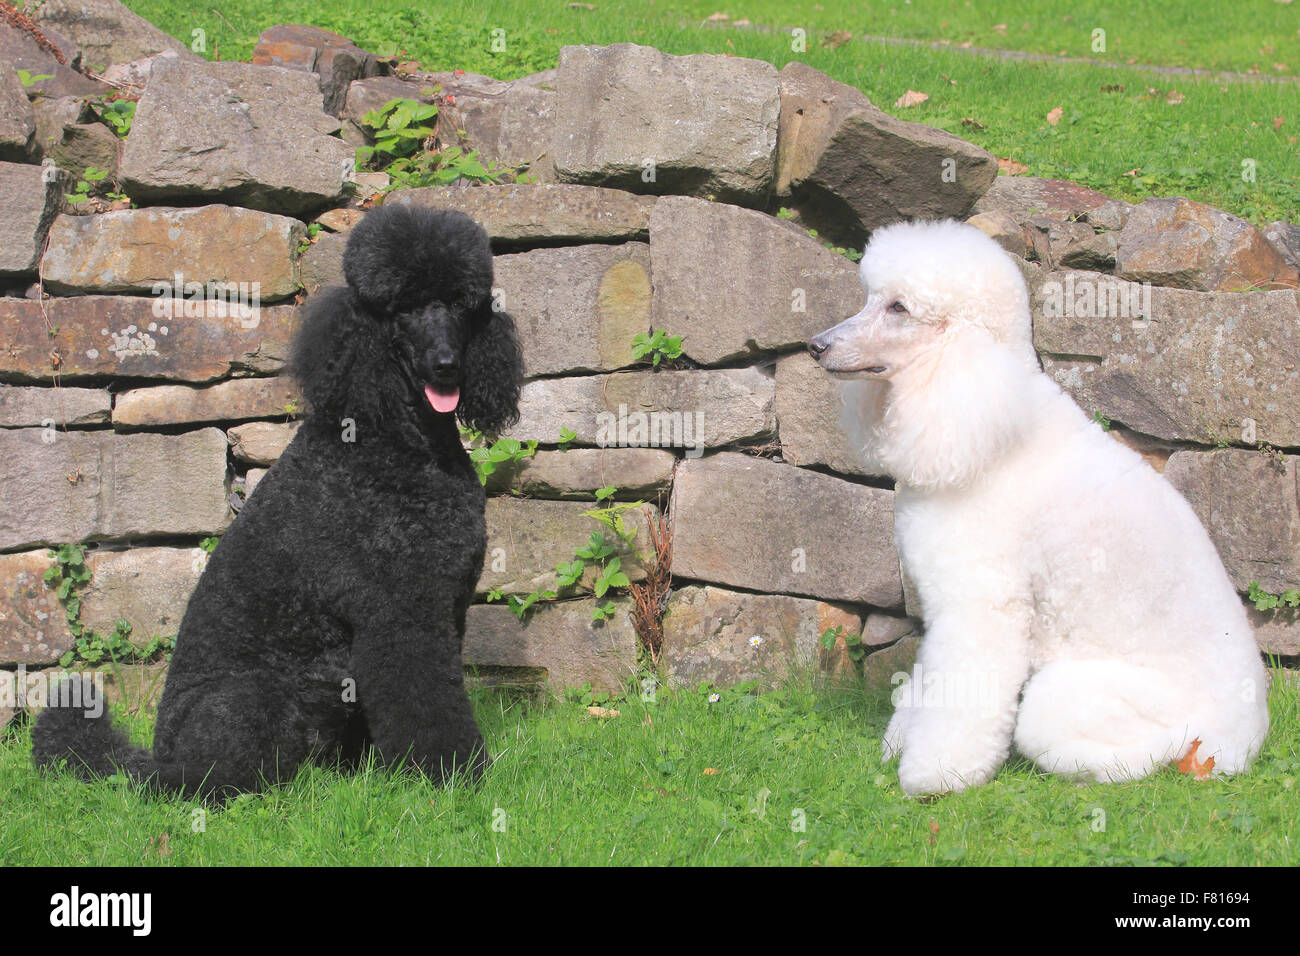 two poodles - Stock Image